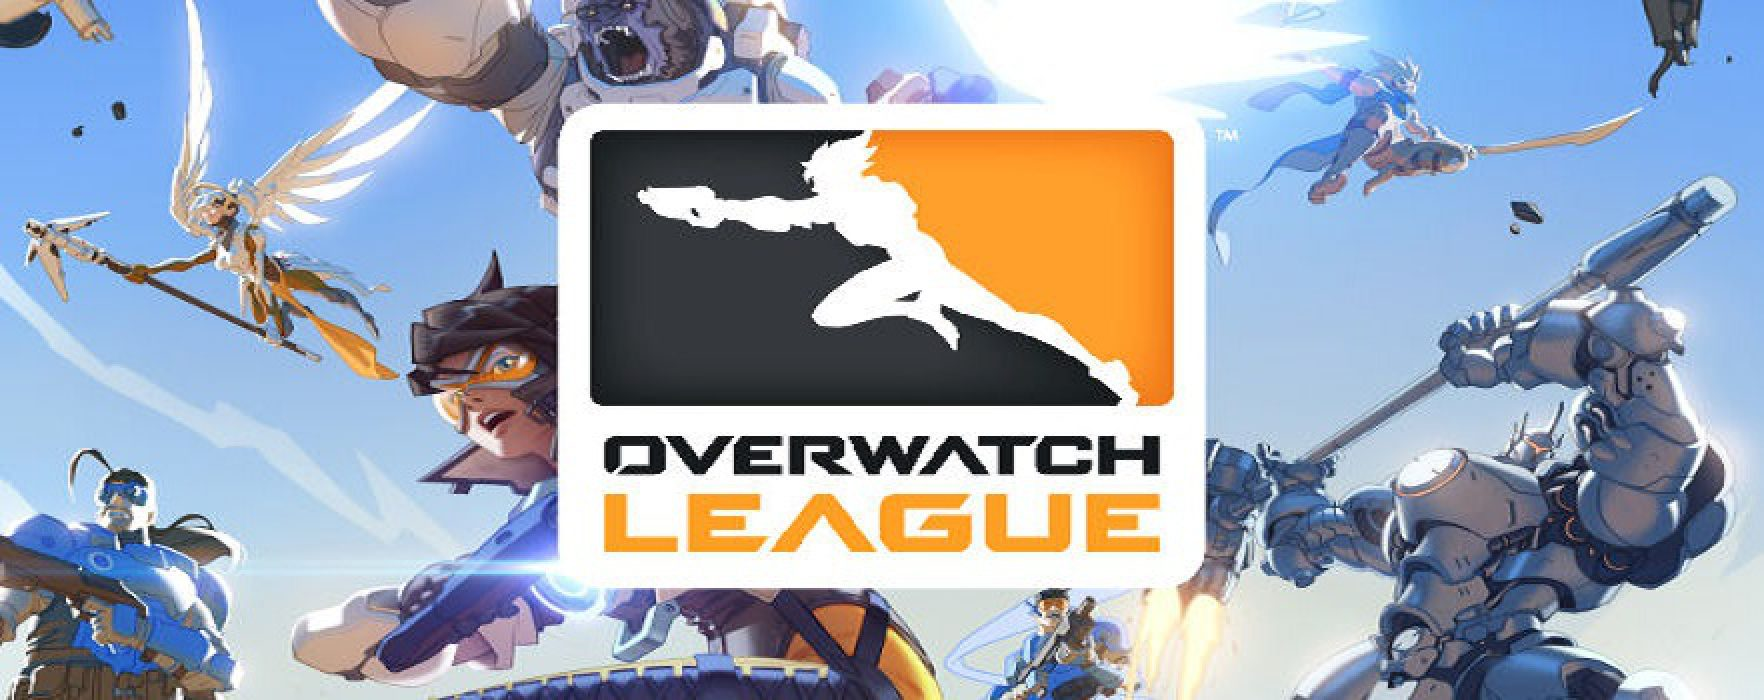 Twitch to Livestream All Overwatch League's Matches Starting Today